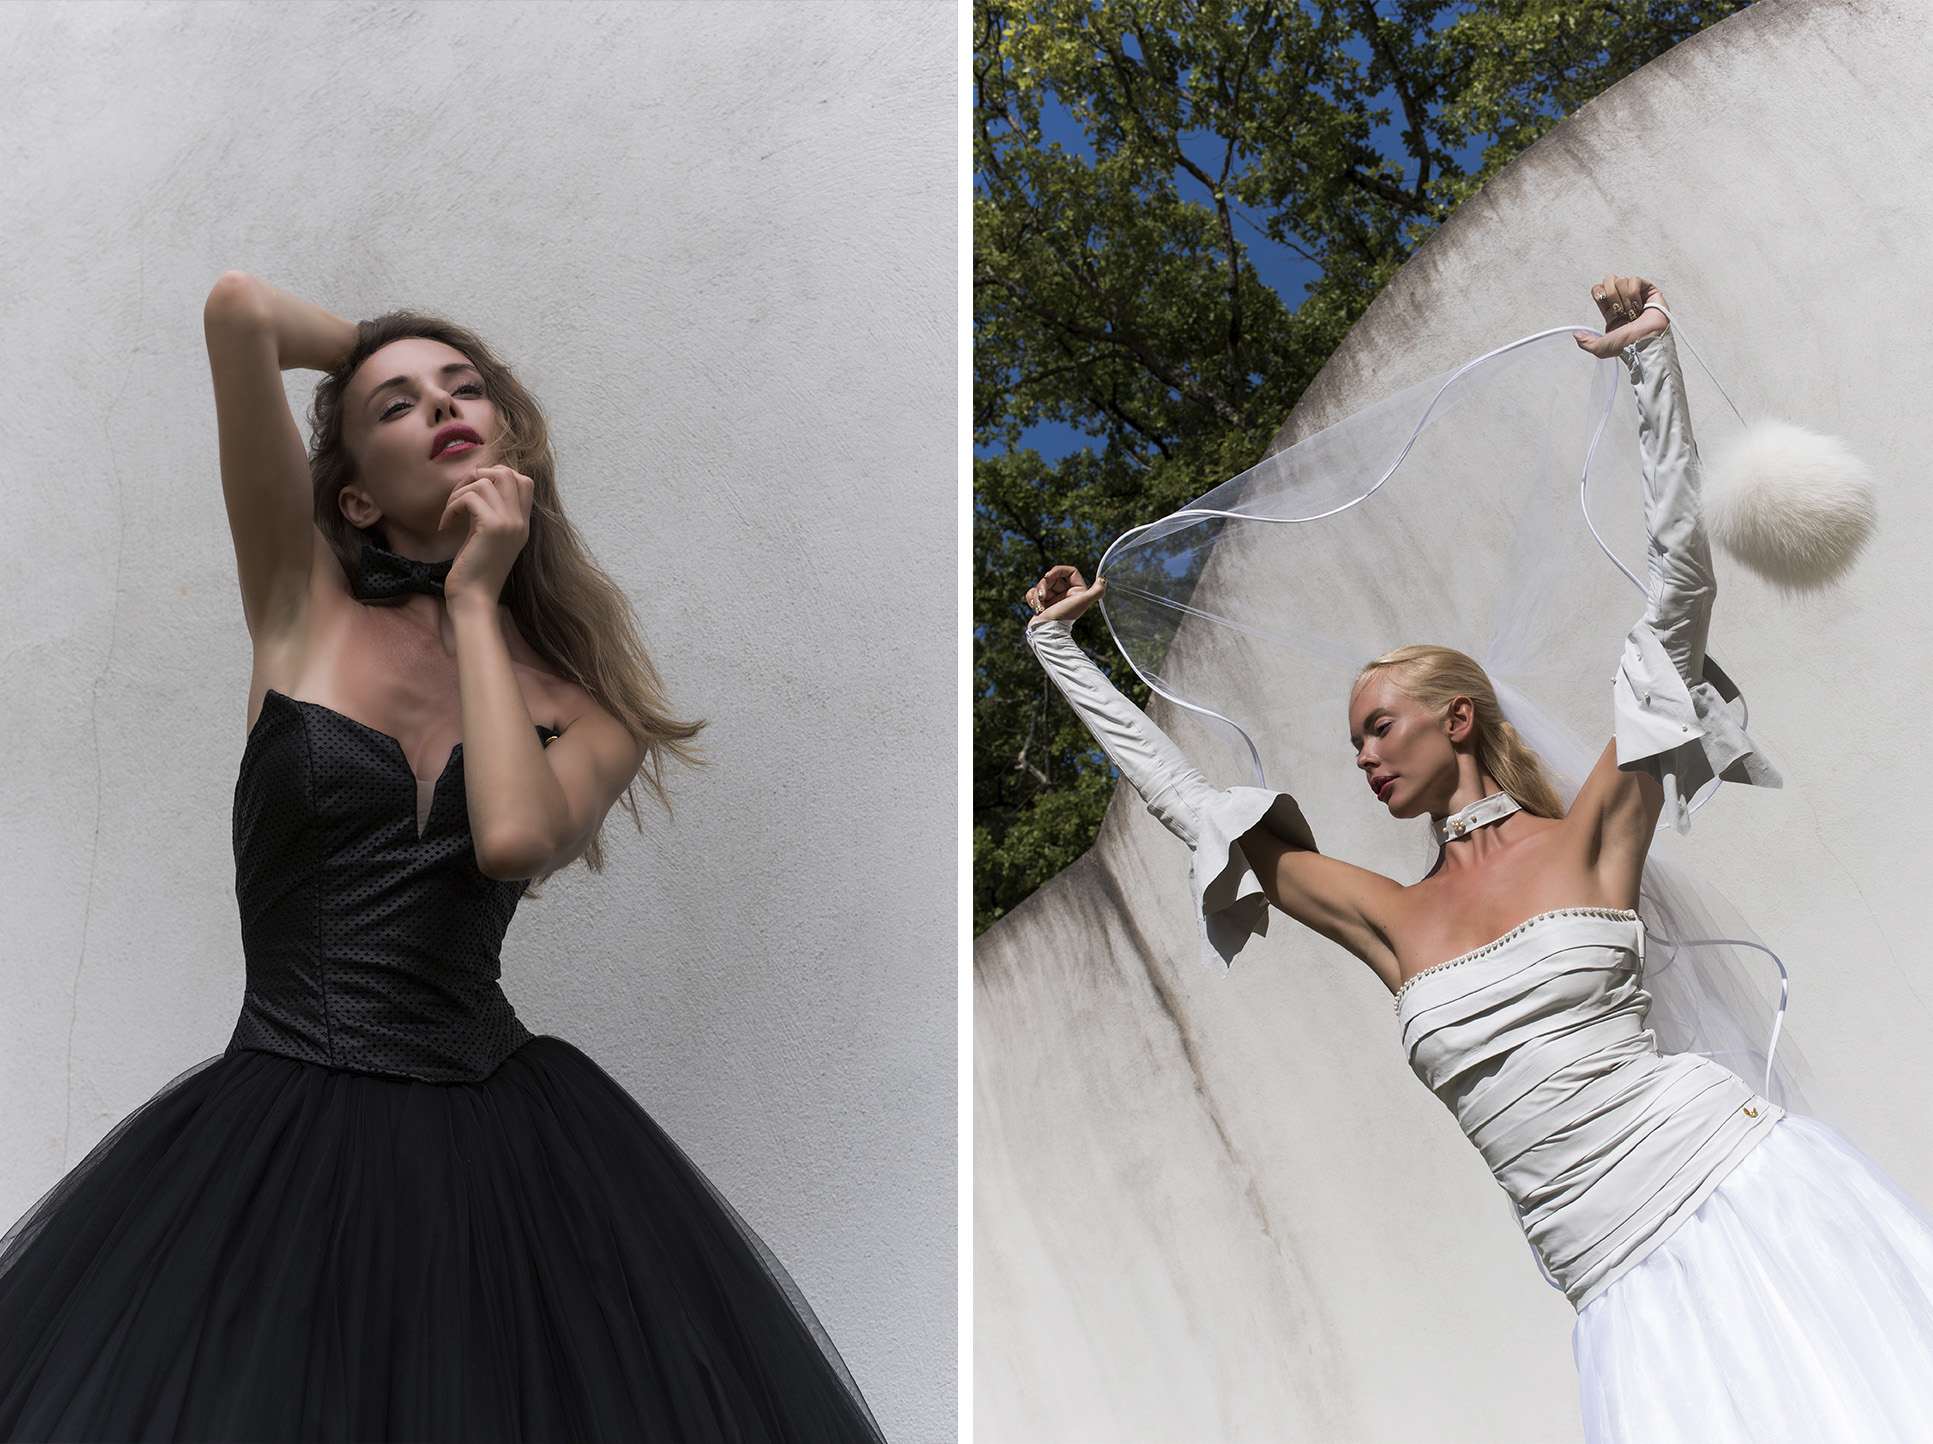 daniel peace photography monaco mess magazine Marketa Hakkinen nordic angels wedding dress photographer